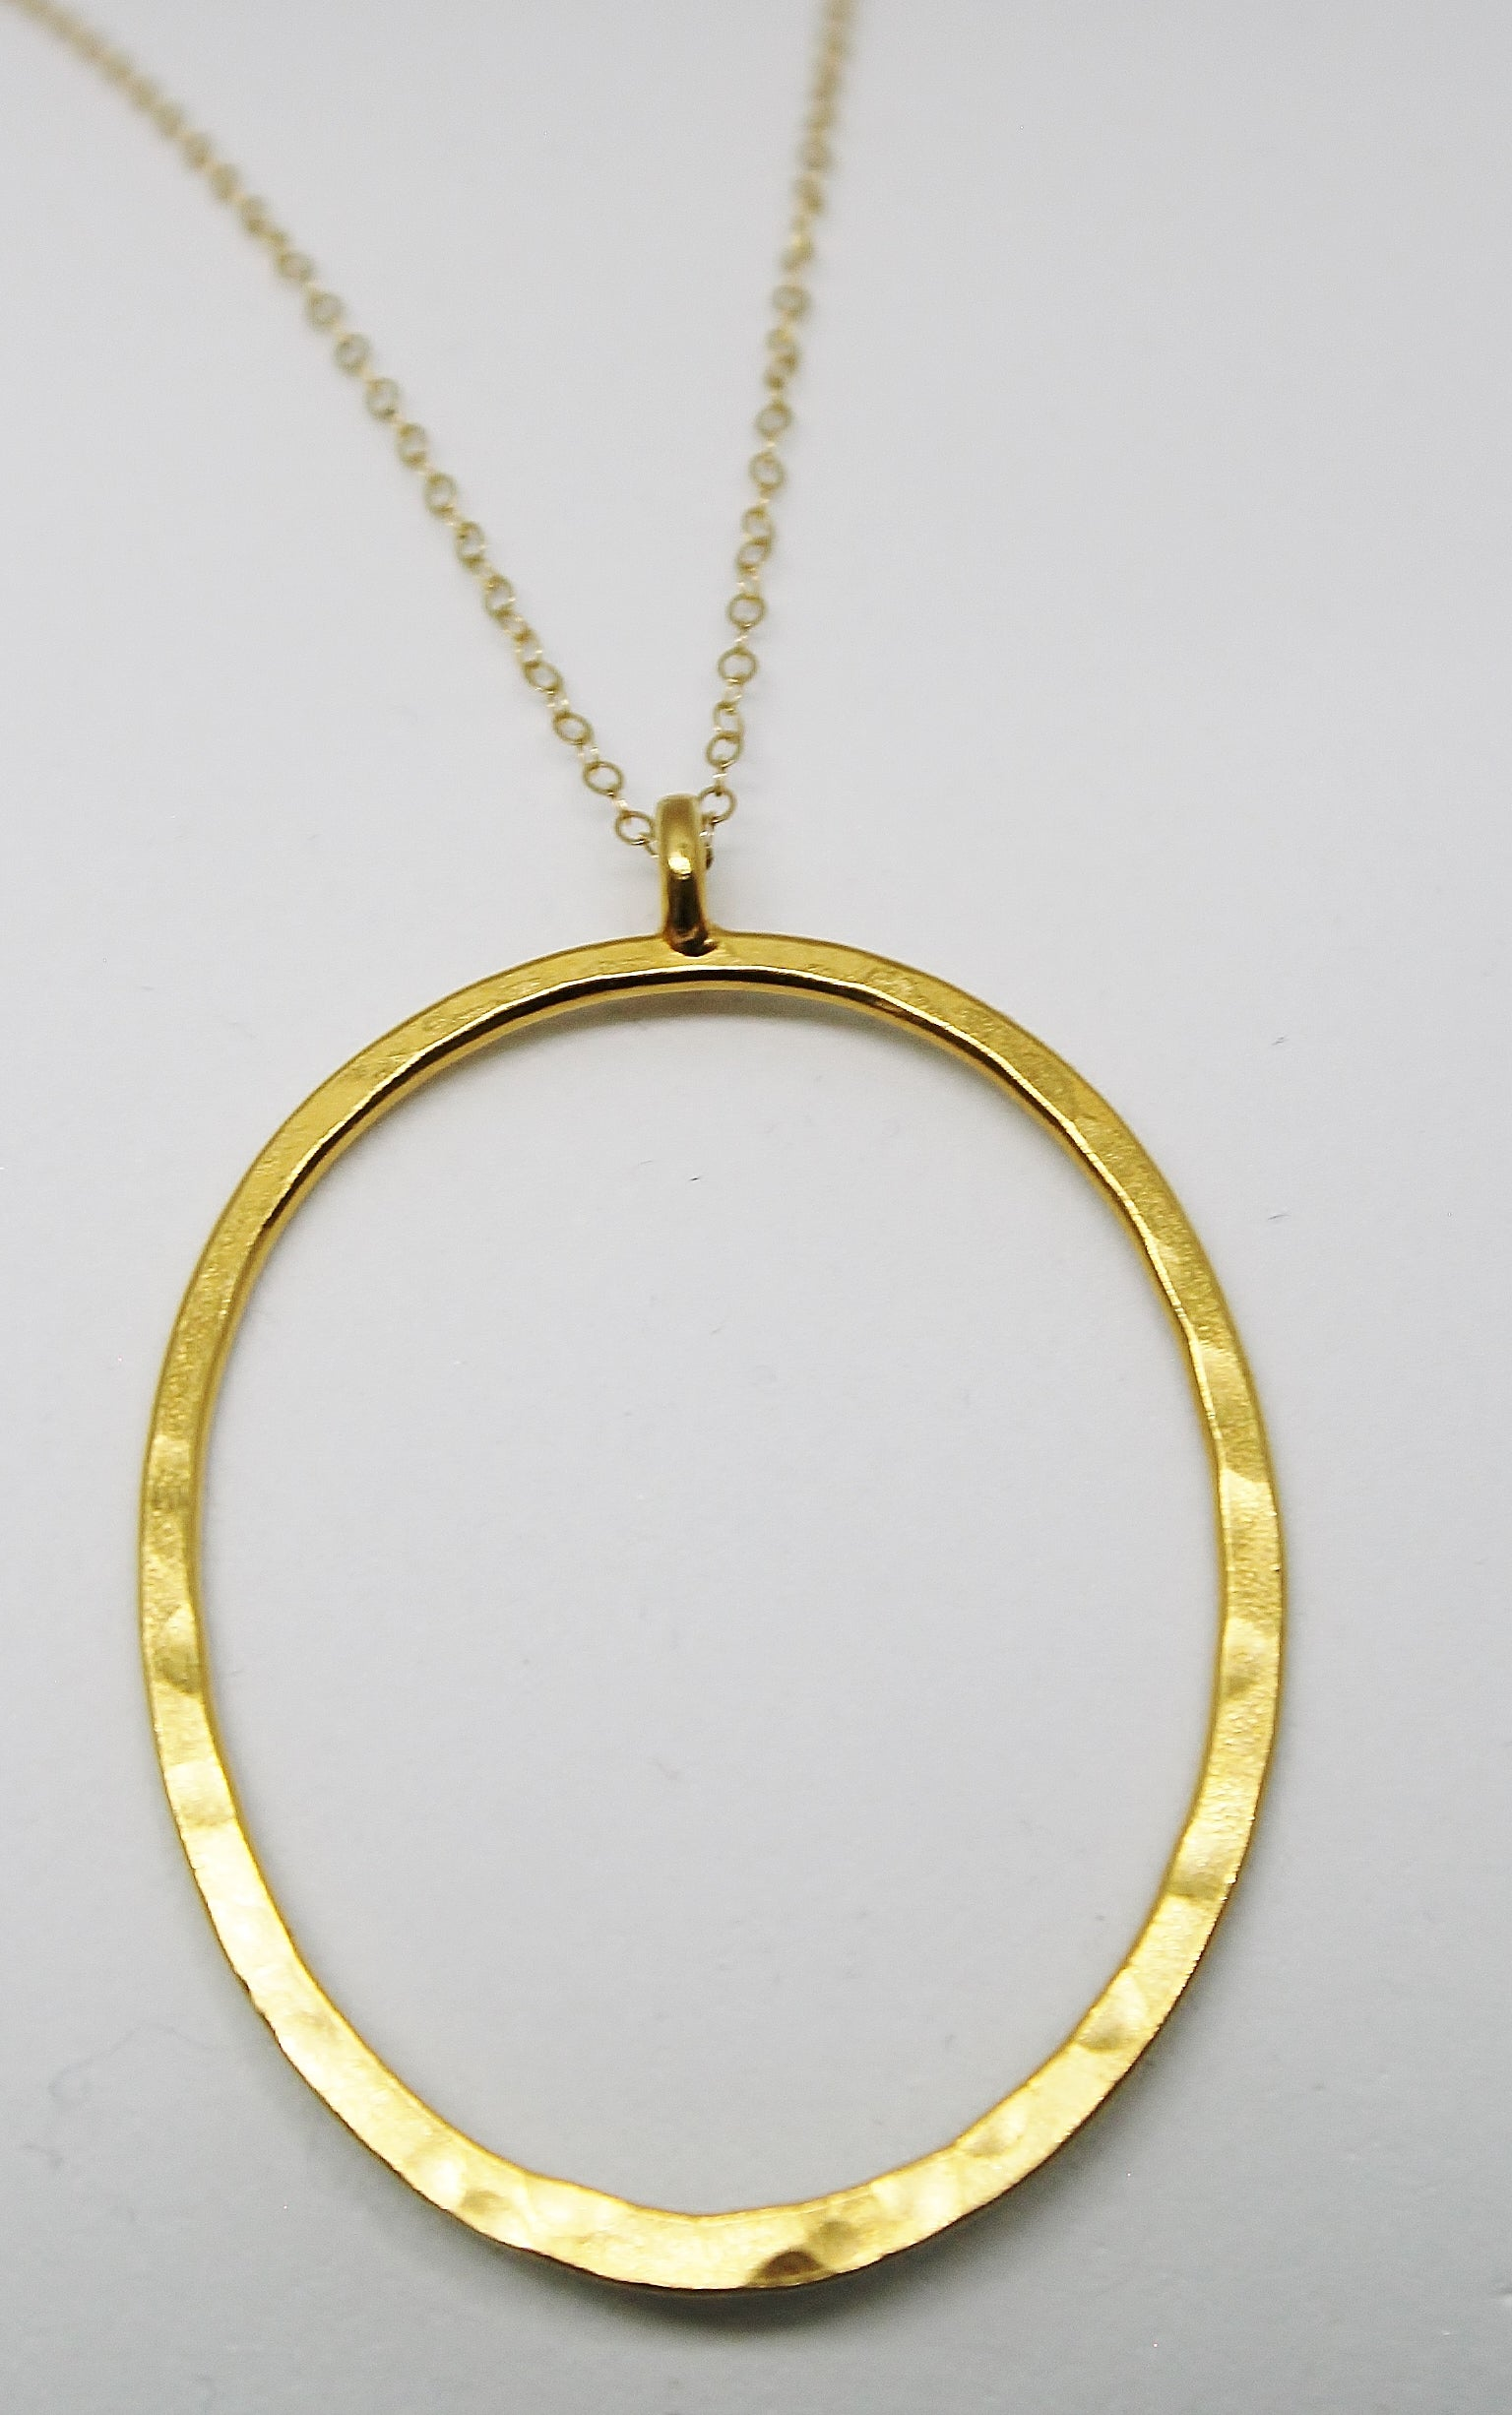 GOLD LARGE OVAL PENDANT LONG CHAIN NECKLACE